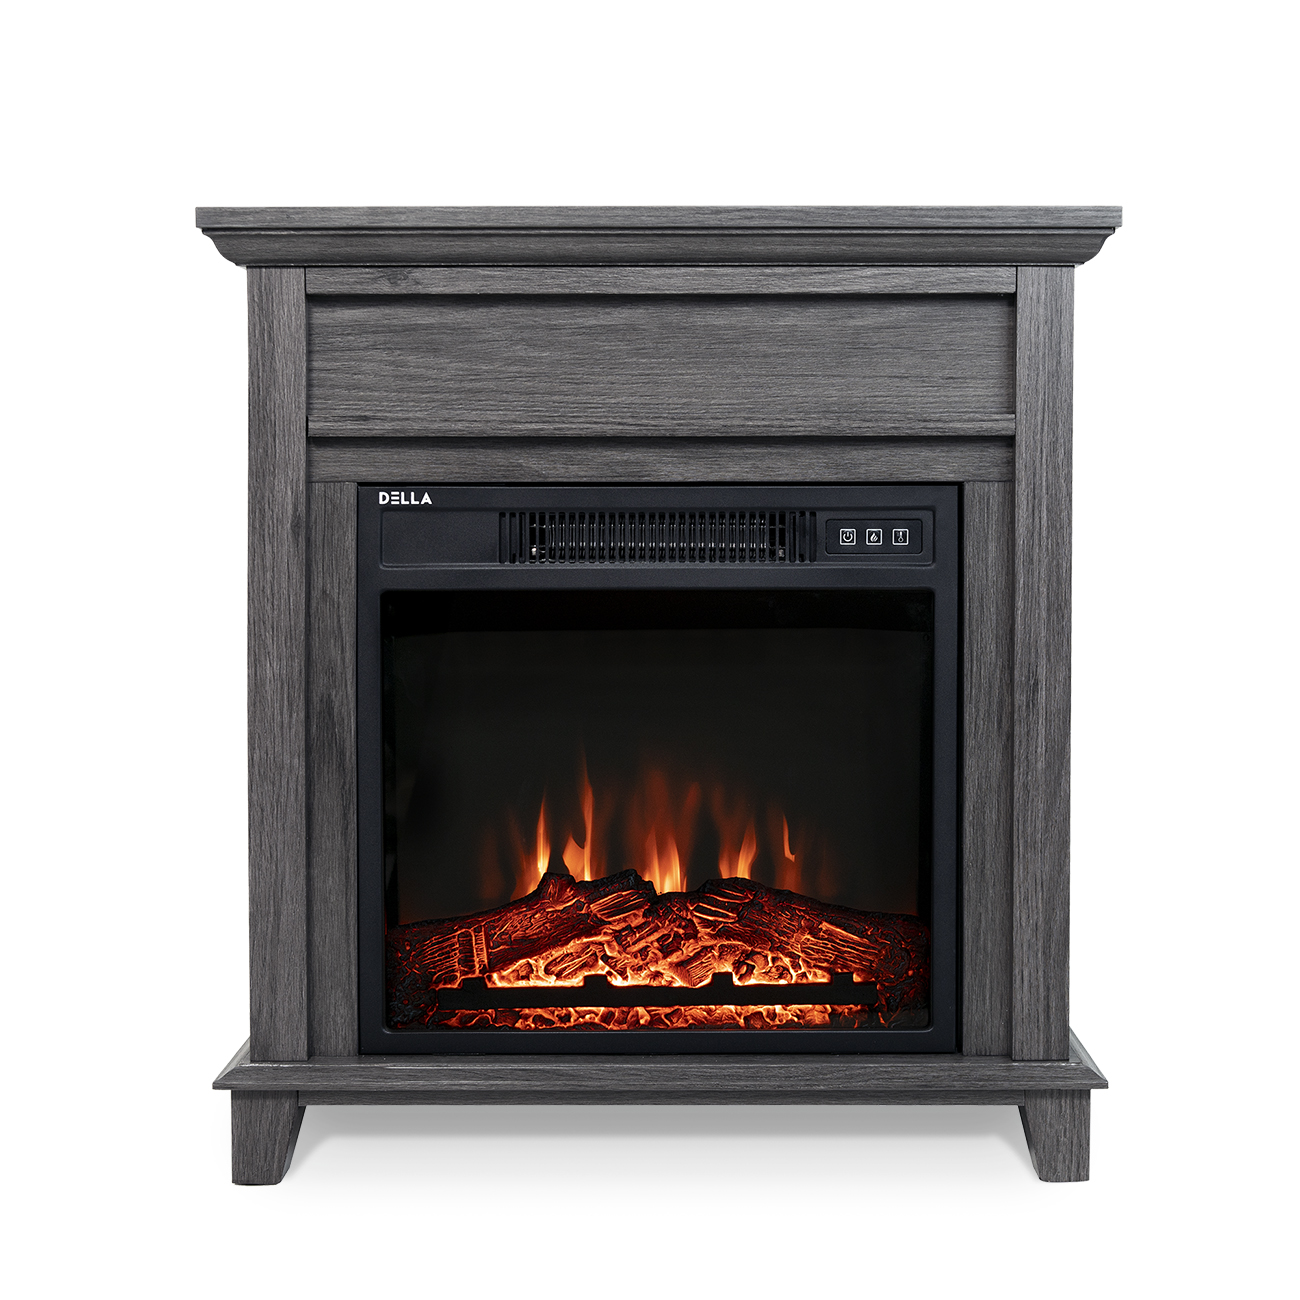 18 In Freestanding Electric Fireplace Mantel Heater In